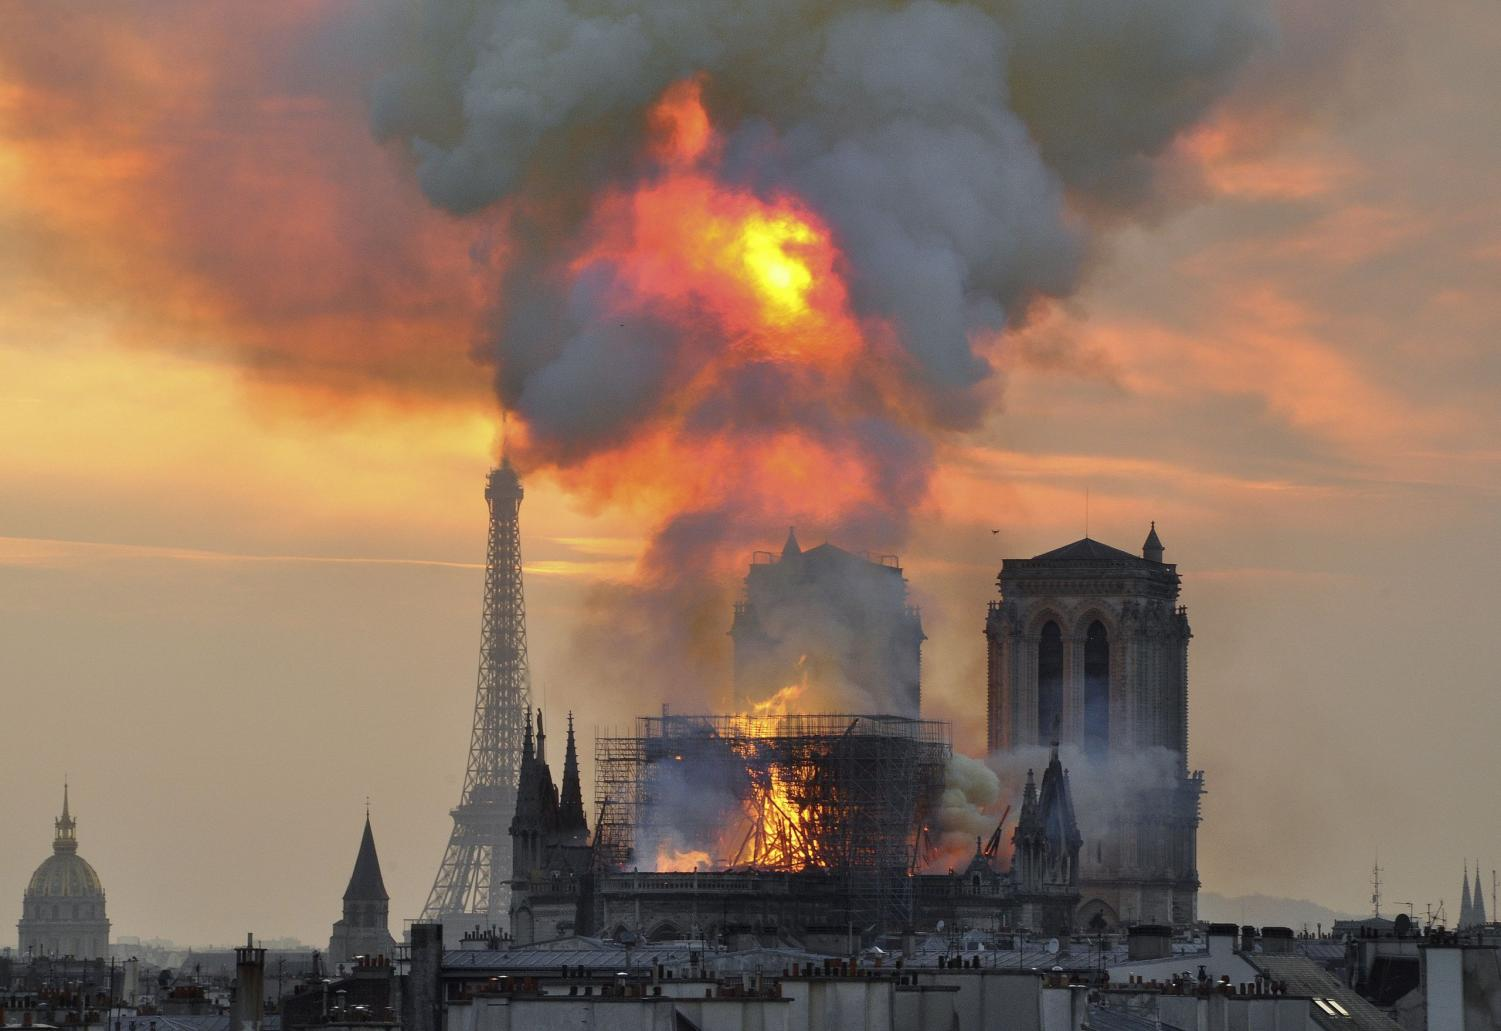 Estimates to the amount of money raised for the reconstruction of Notre Dame extend up to $1 billion.